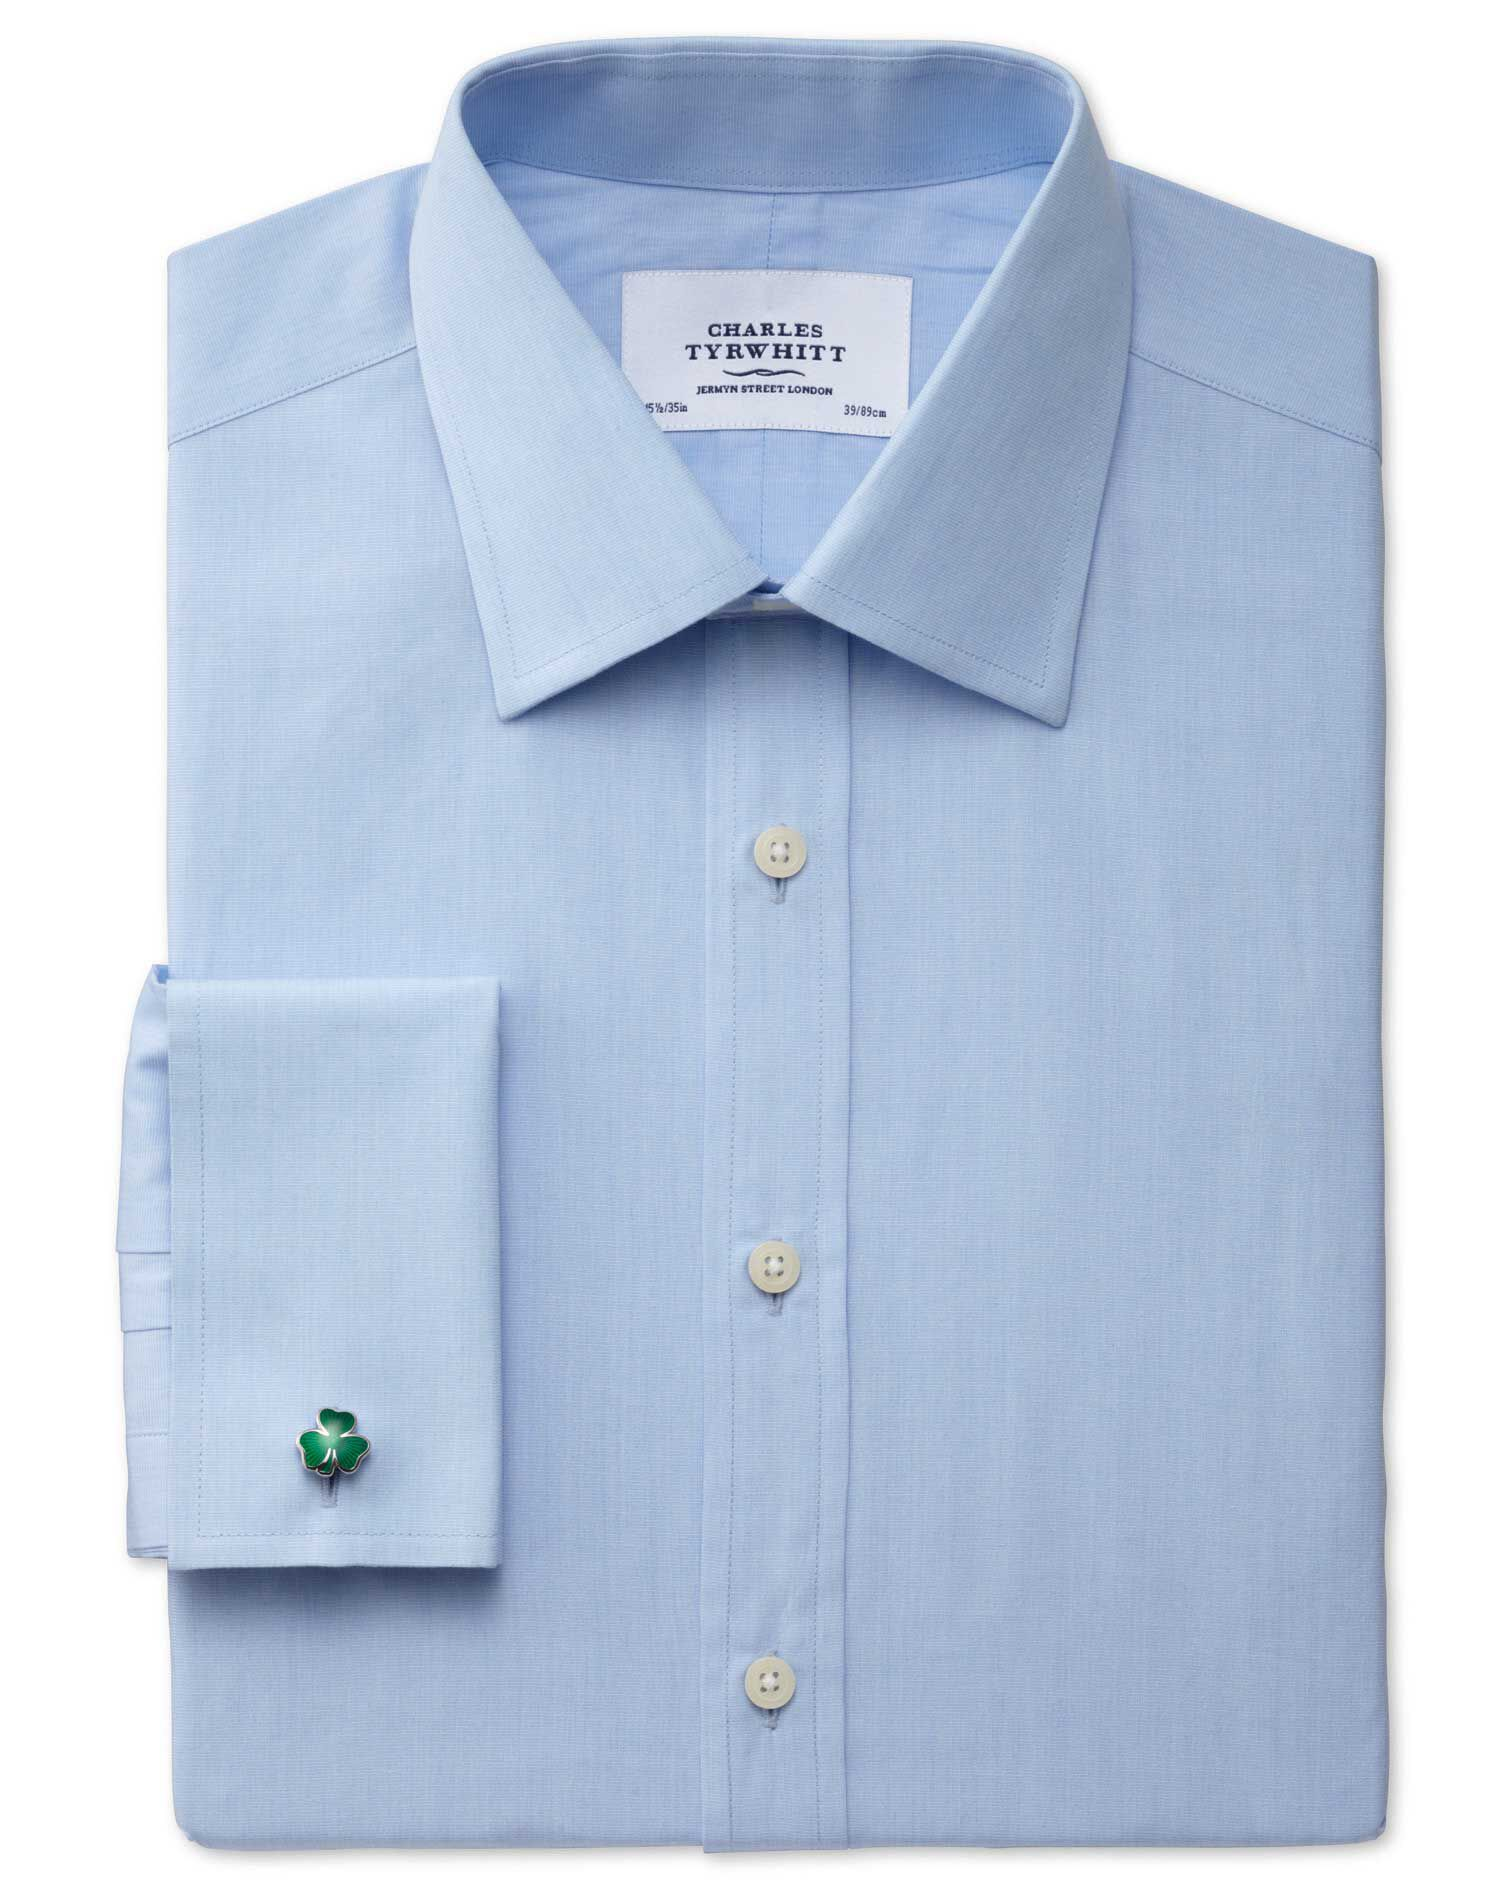 Extra Slim Fit End-On-End Sky Blue Cotton Formal Shirt Double Cuff Size 16/33 by Charles Tyrwhitt